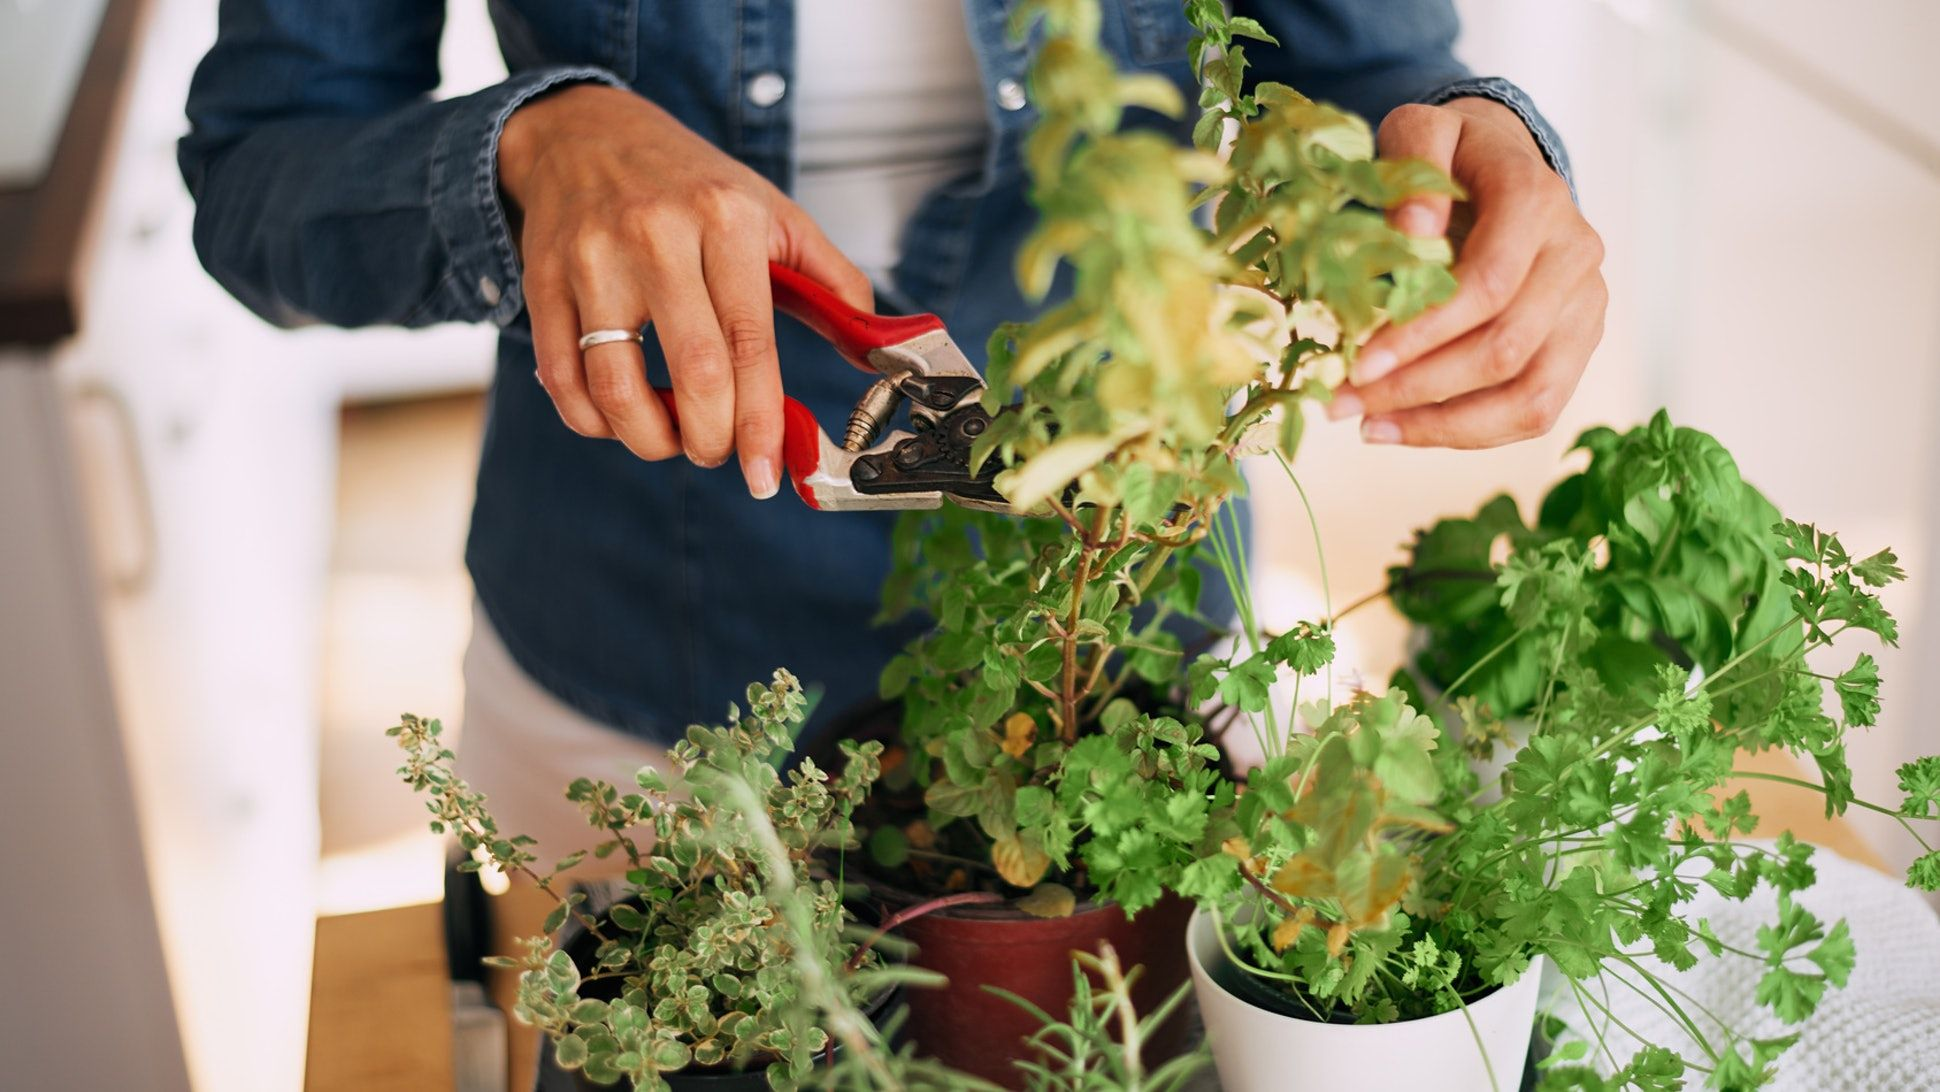 9 Houseplants That Can Help Repel Bugs Plants that repel